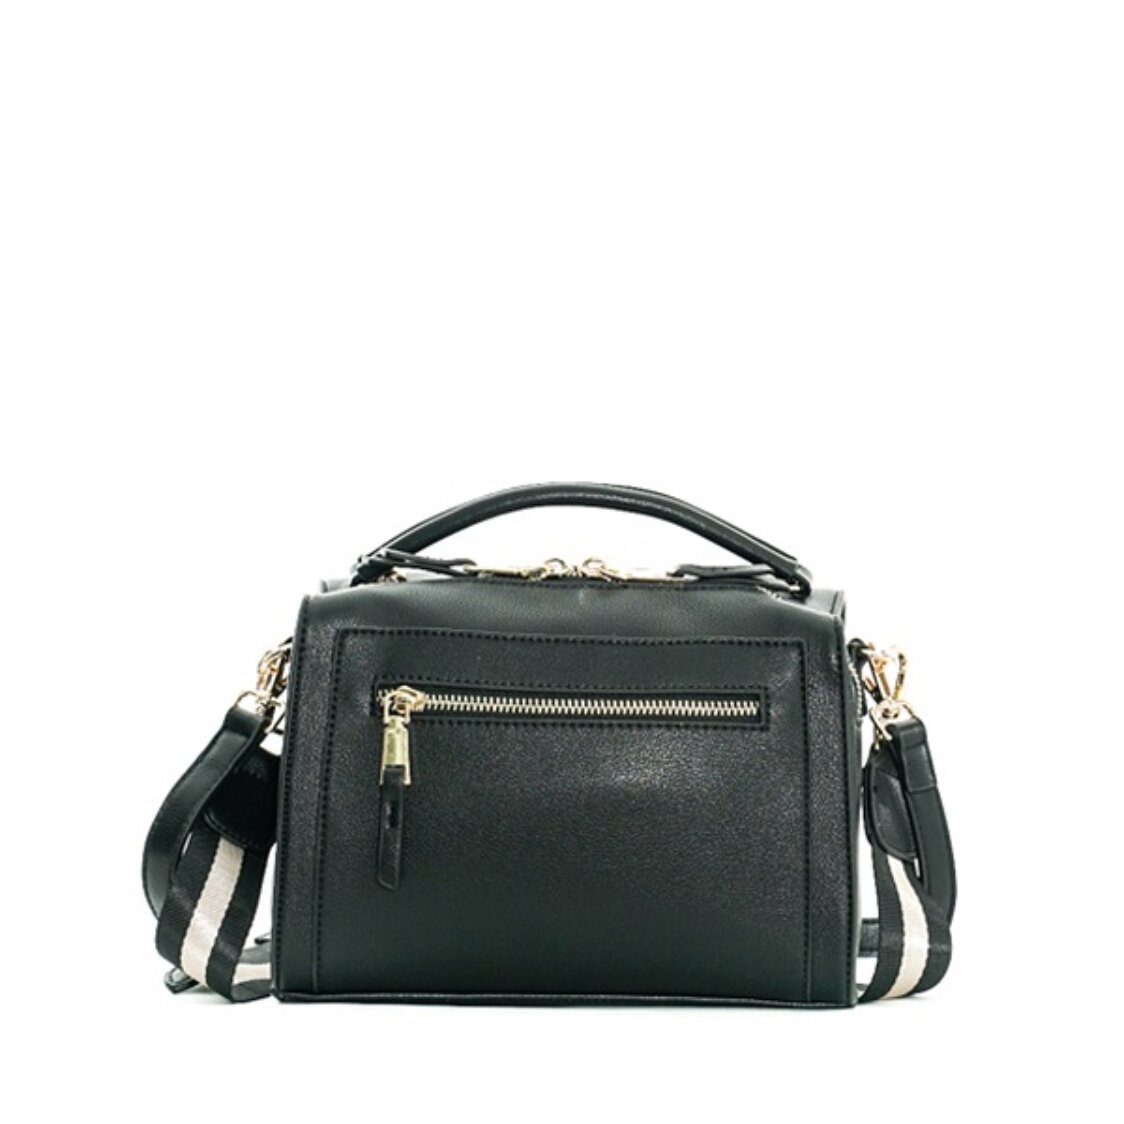 Renoma Small Shoulder Bag Black